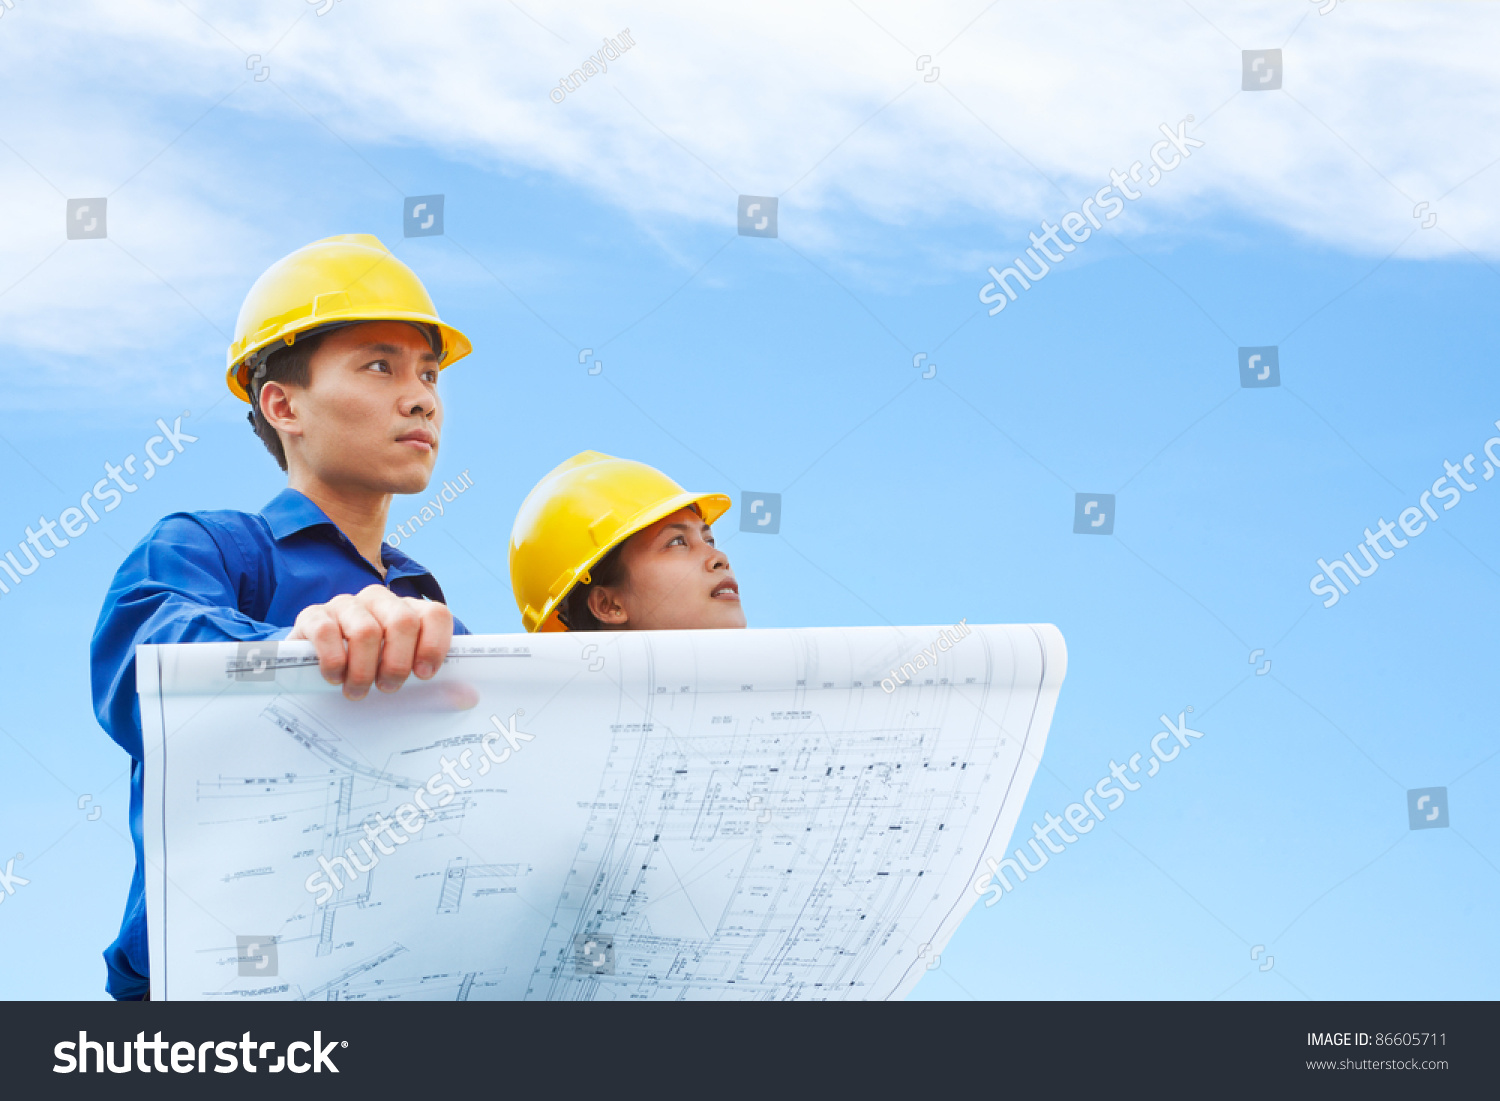 Contractor holding blueprint blue sky background stock photo contractor holding blueprint with blue sky background malvernweather Images